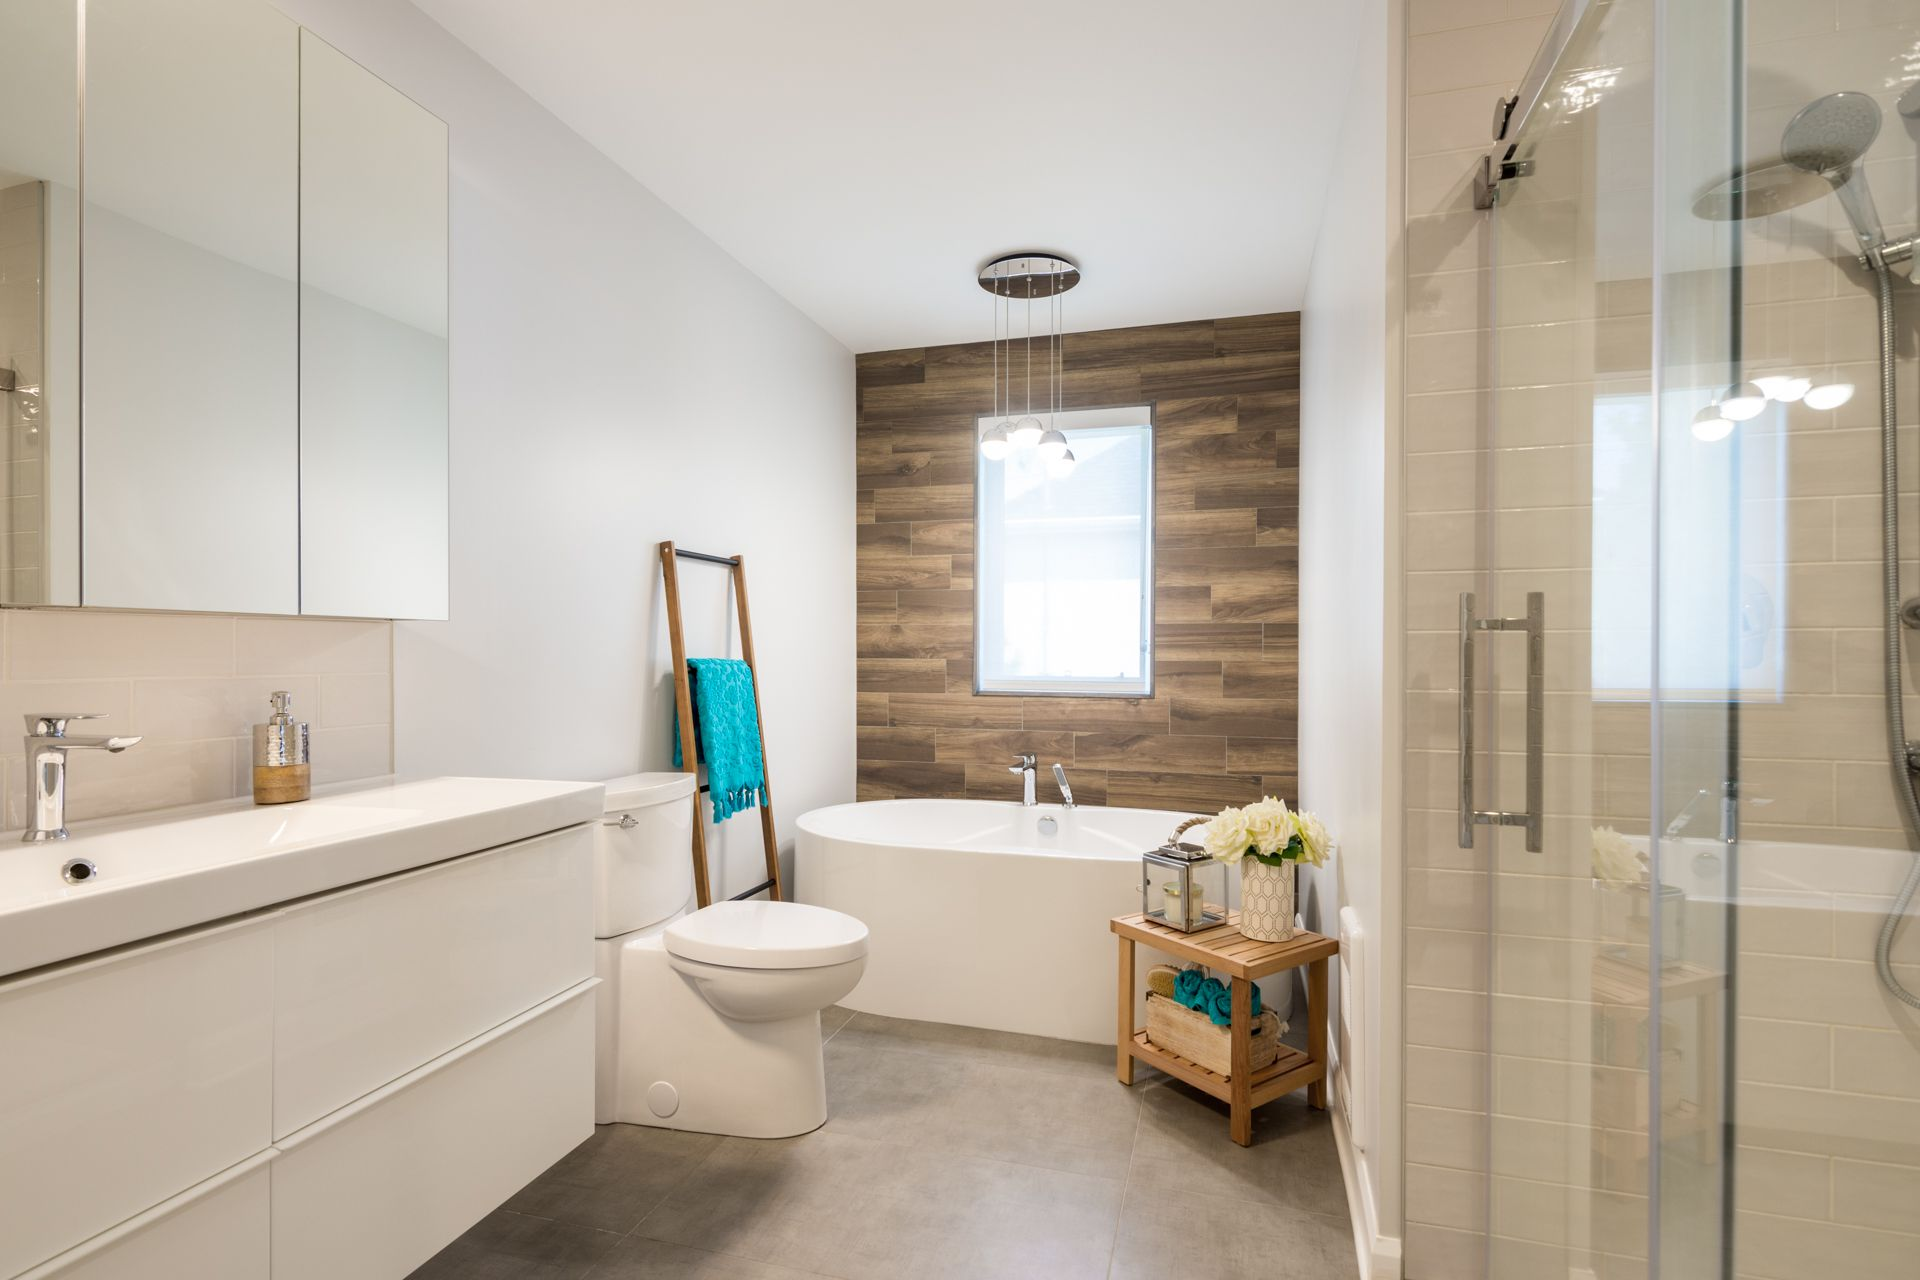 Salle De Bain Blanche Et Mur En Porcelaine Imitation Bois White Bathroom And Imitation Wood Porcelain Wall White Bathroom Salle De Bain House